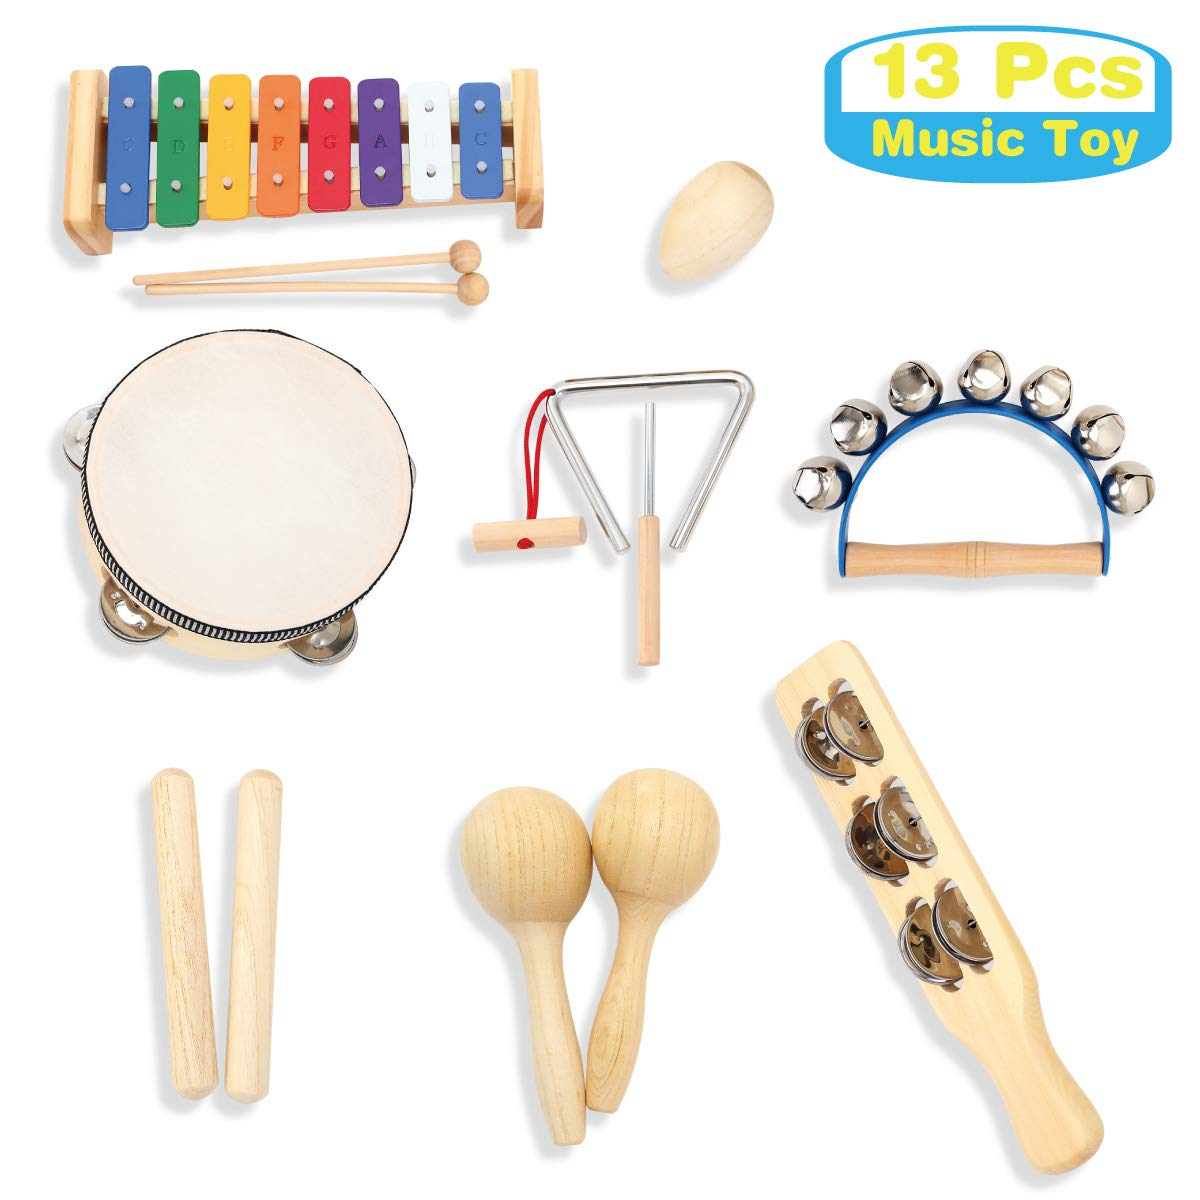 MUSICUBE Kids Wood Musical Instruments, Percussion Set with Xylophone for Kids Children, 13 Pcs, ASTM Certified Toddler Musical Toys